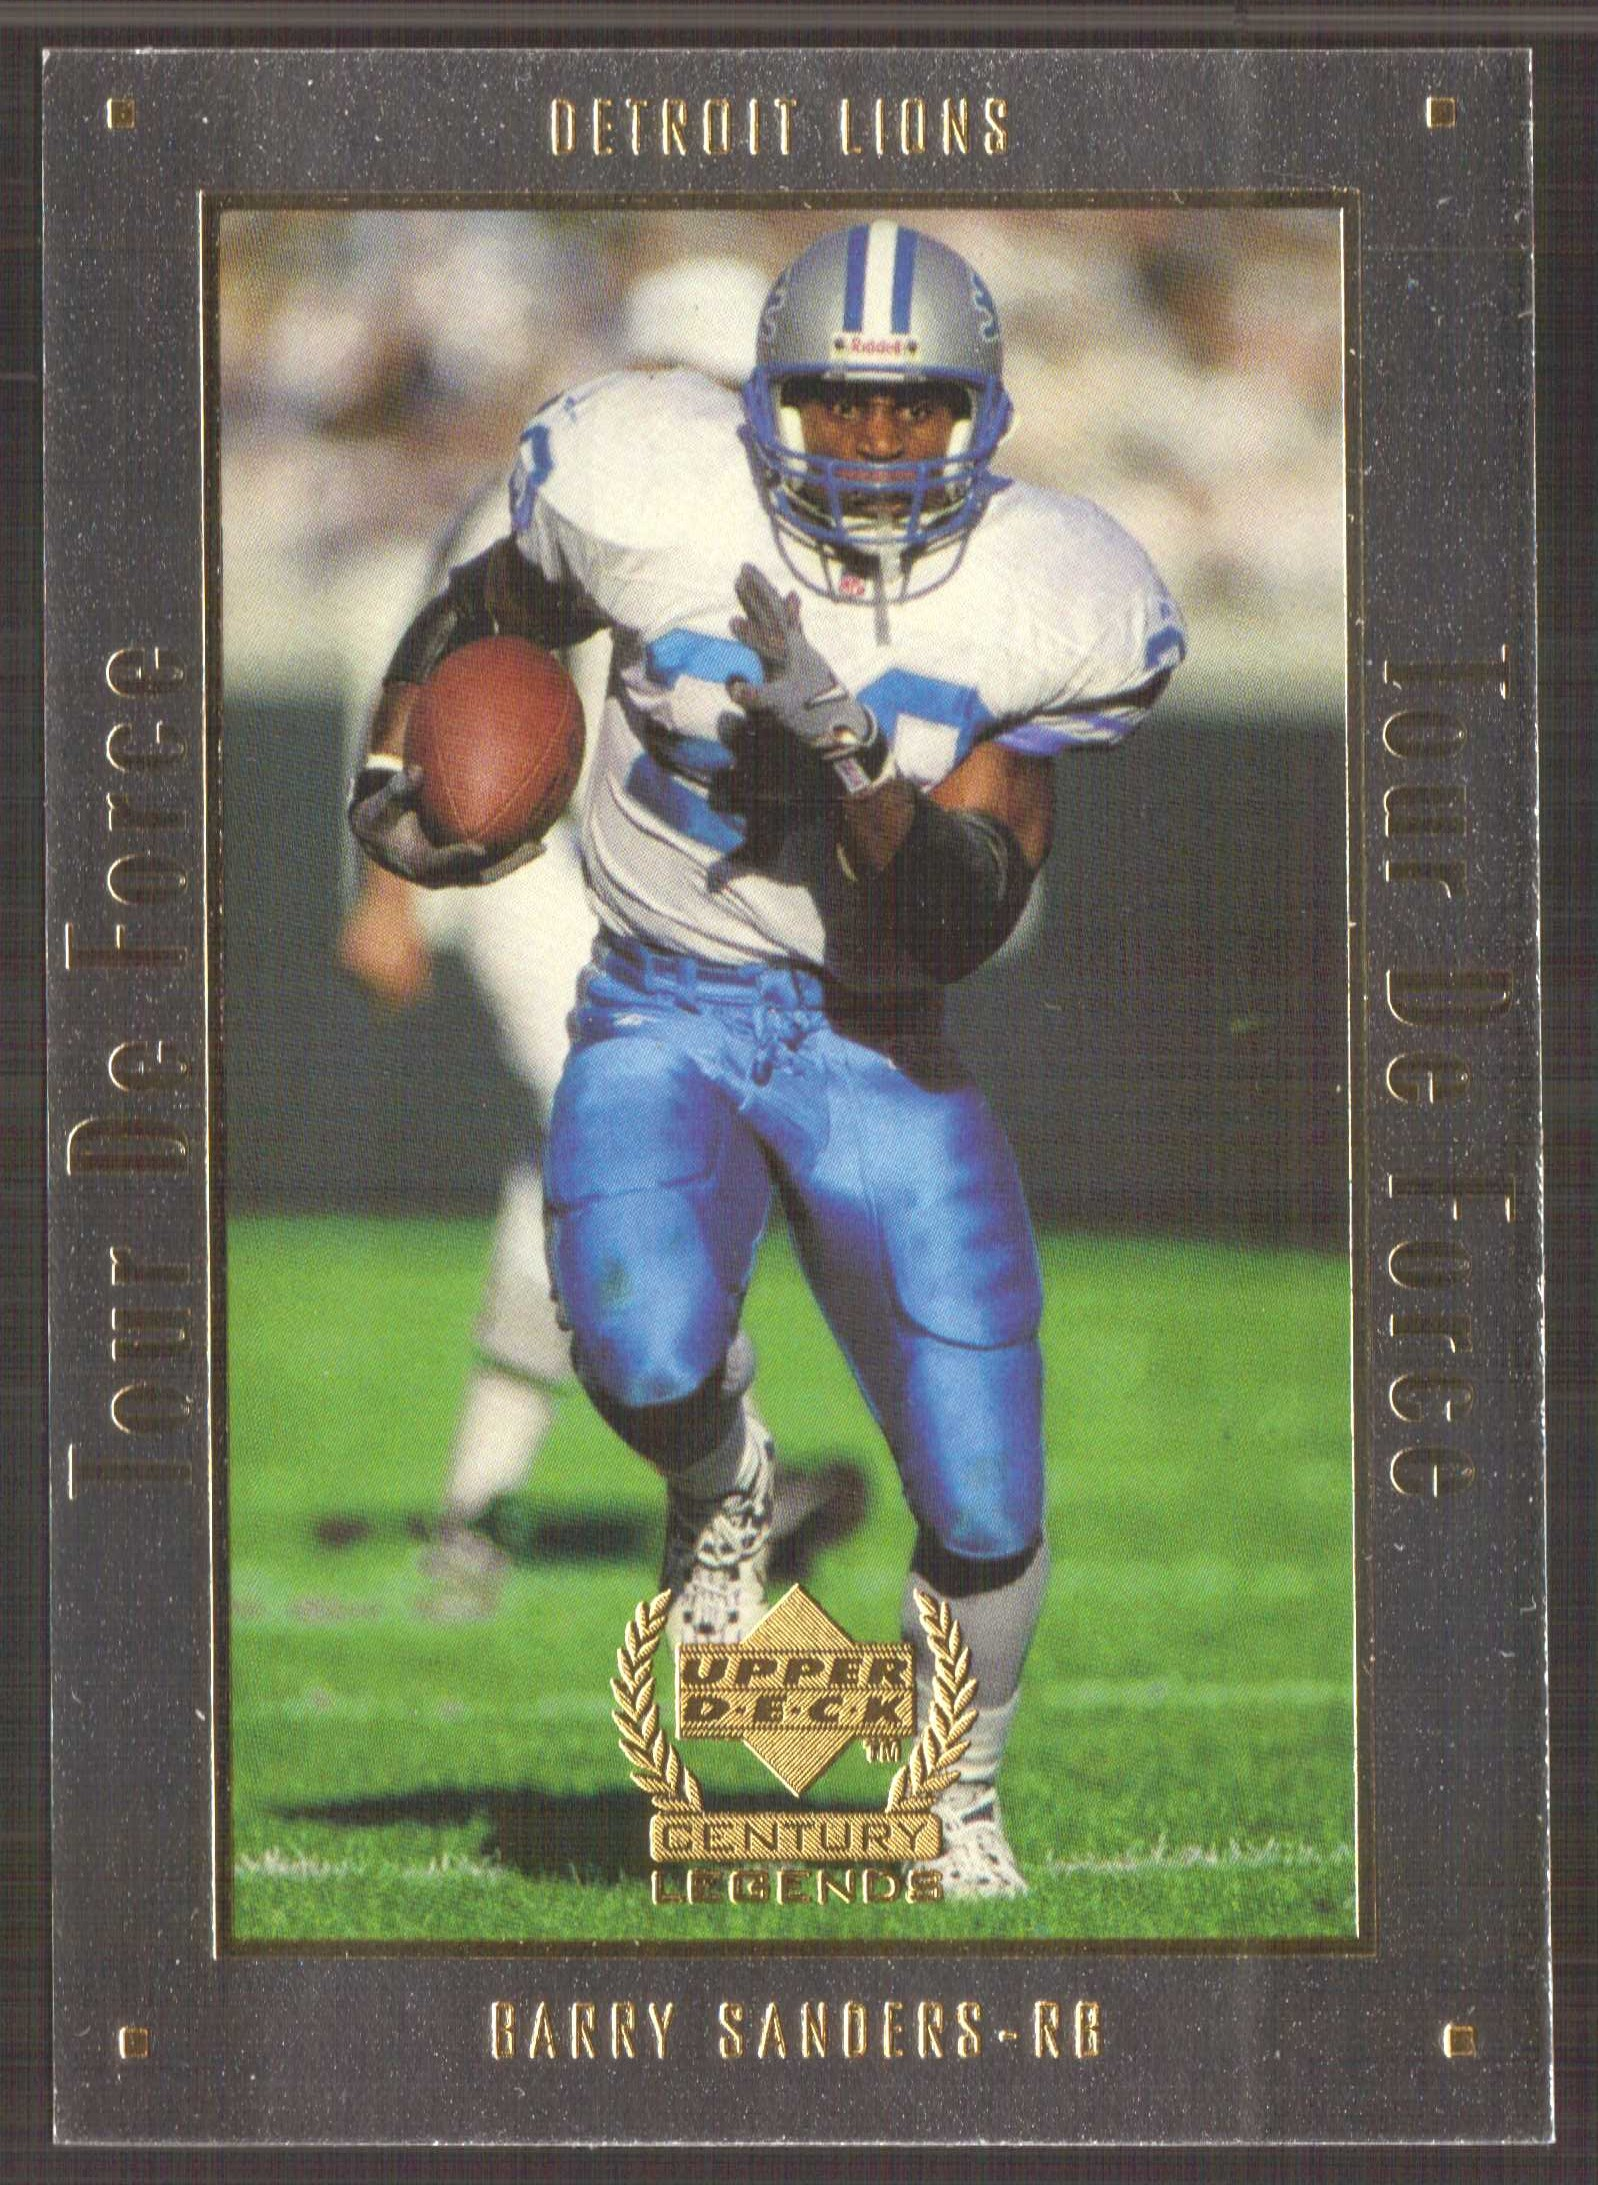 1999 Upper Deck Century Legends Tour de Force #A8 Barry Sanders front image